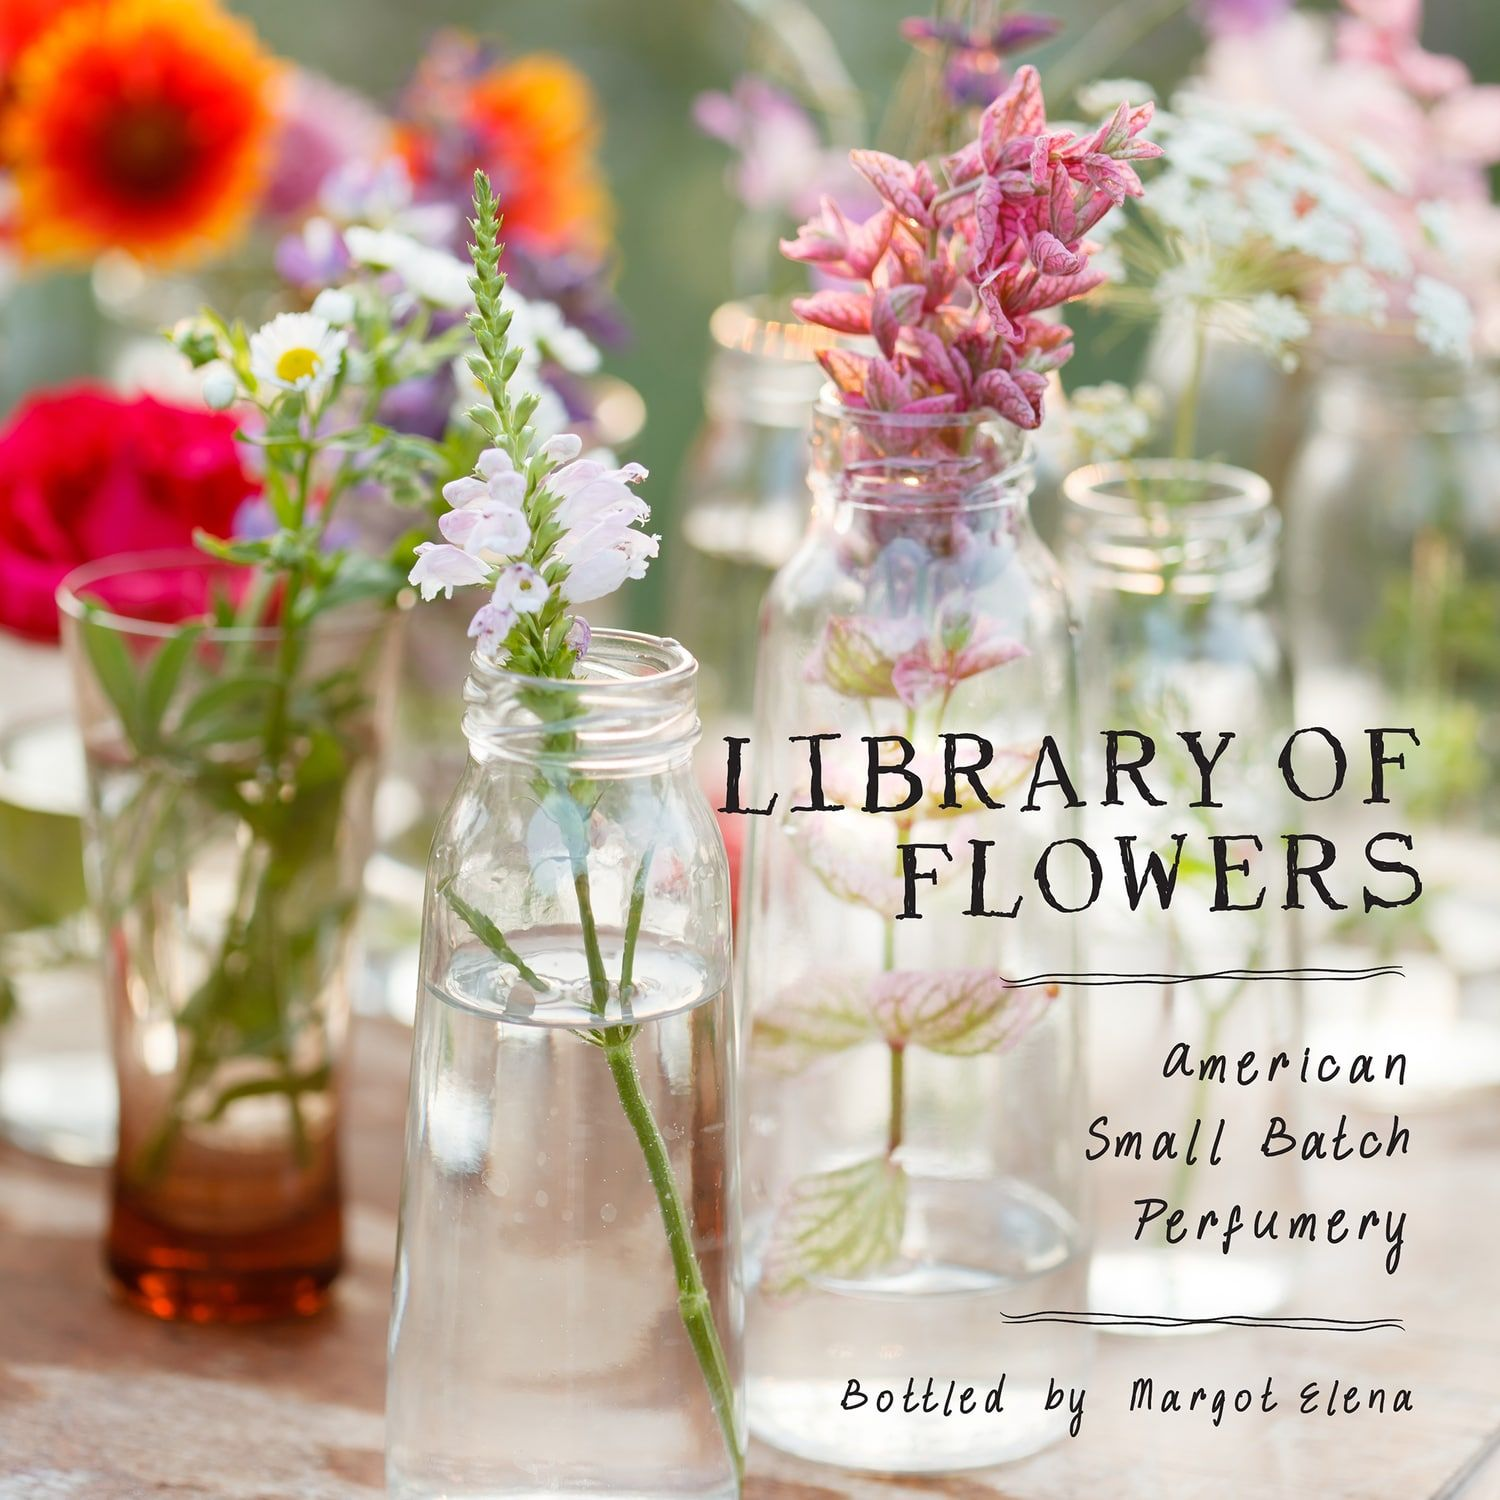 Library Of Flowers Willow Water Hand Cream Willow Flowers Library Cream Vanilla Perfume Eau De Parfum Willow Water